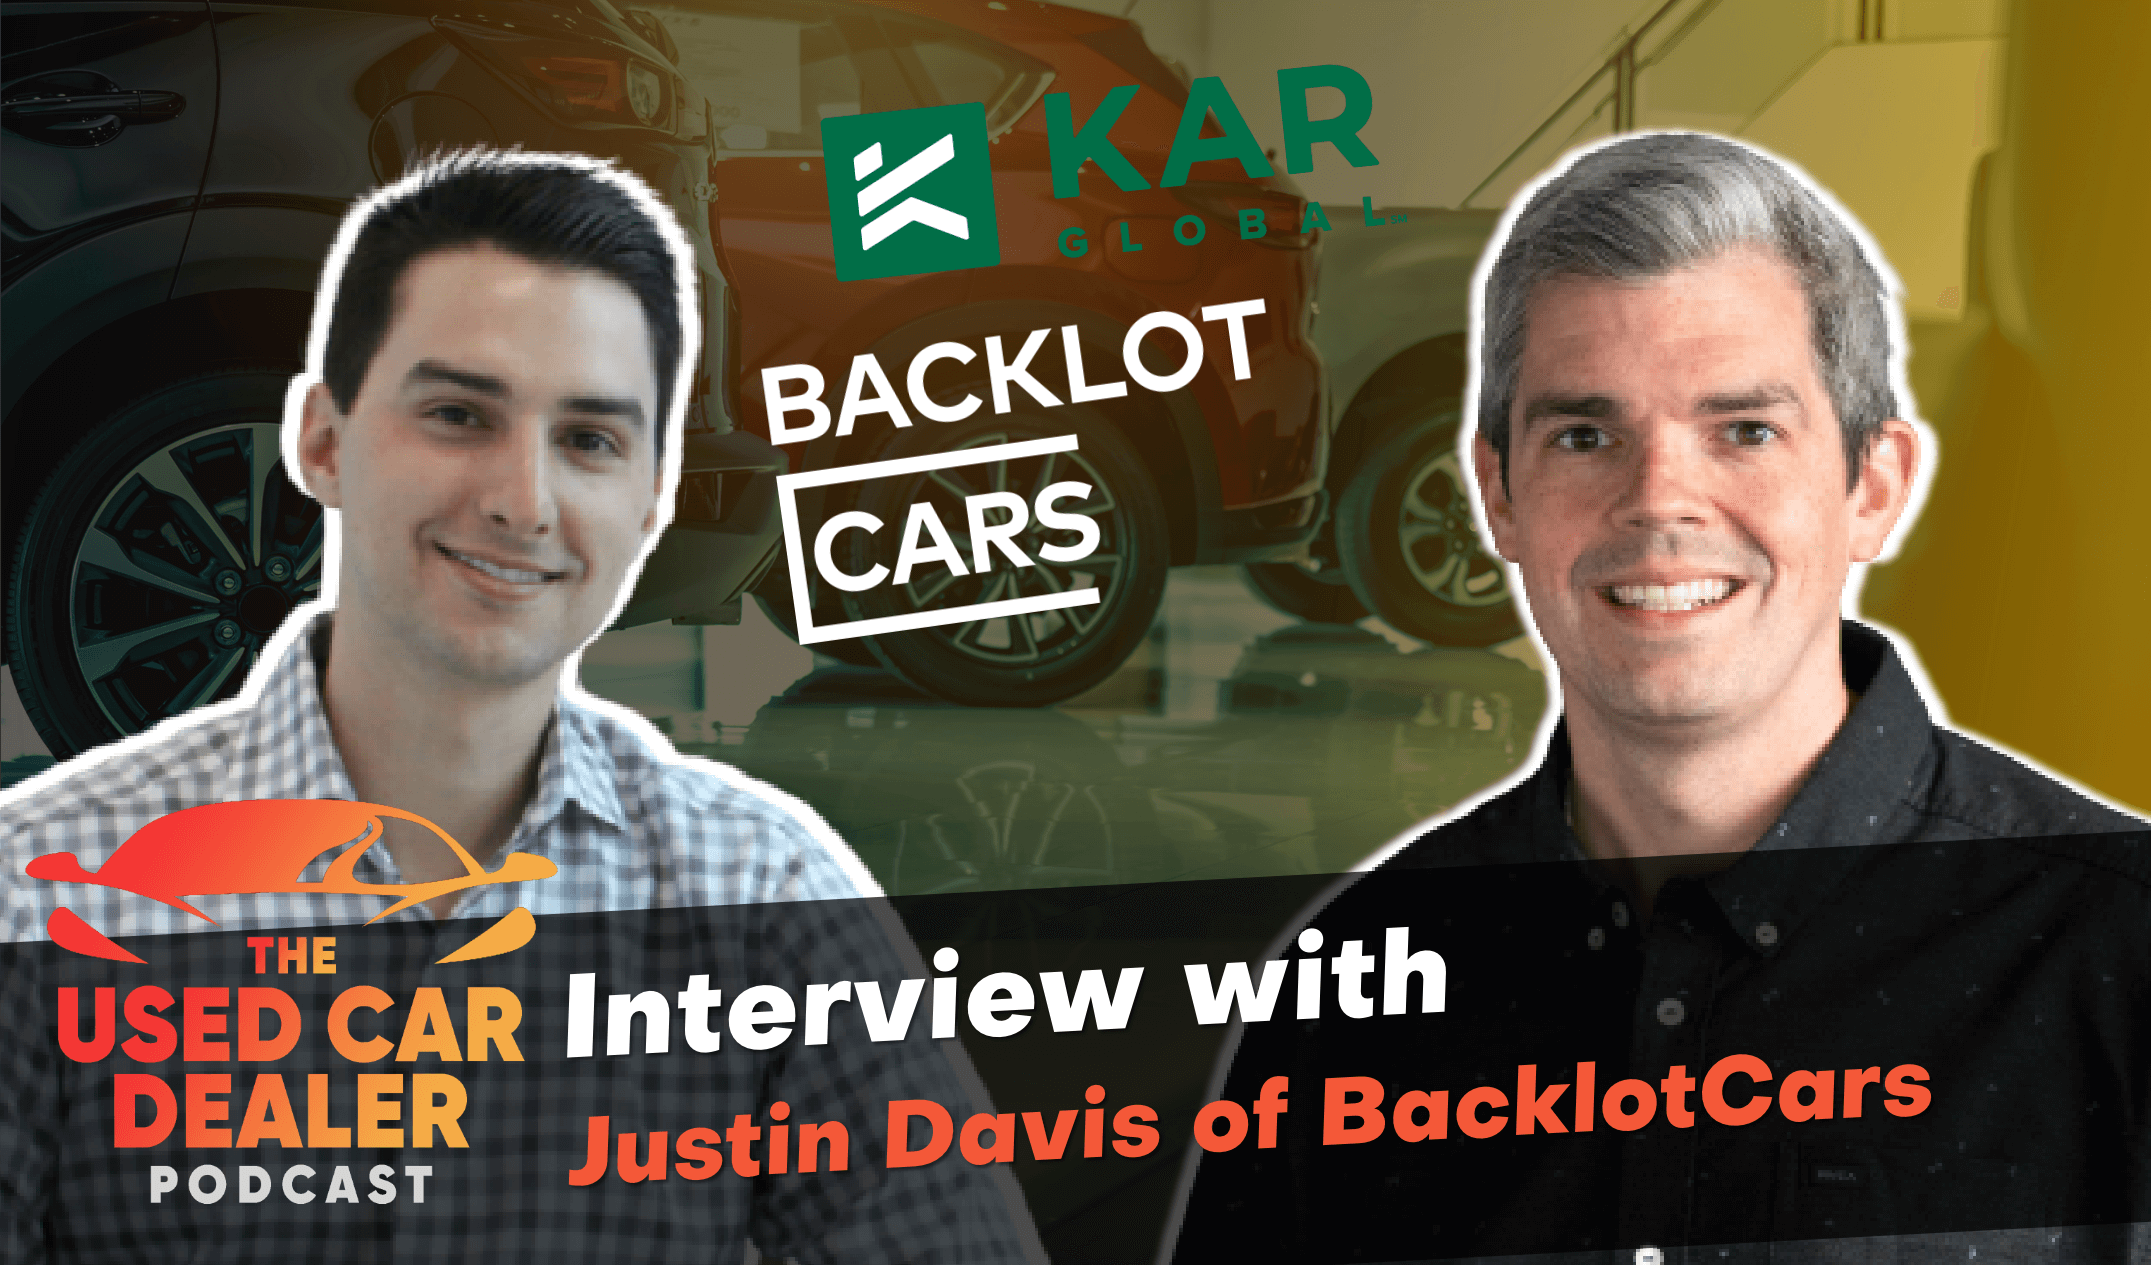 Justin Davis of BacklotCars on Online Wholesale and Used Cars